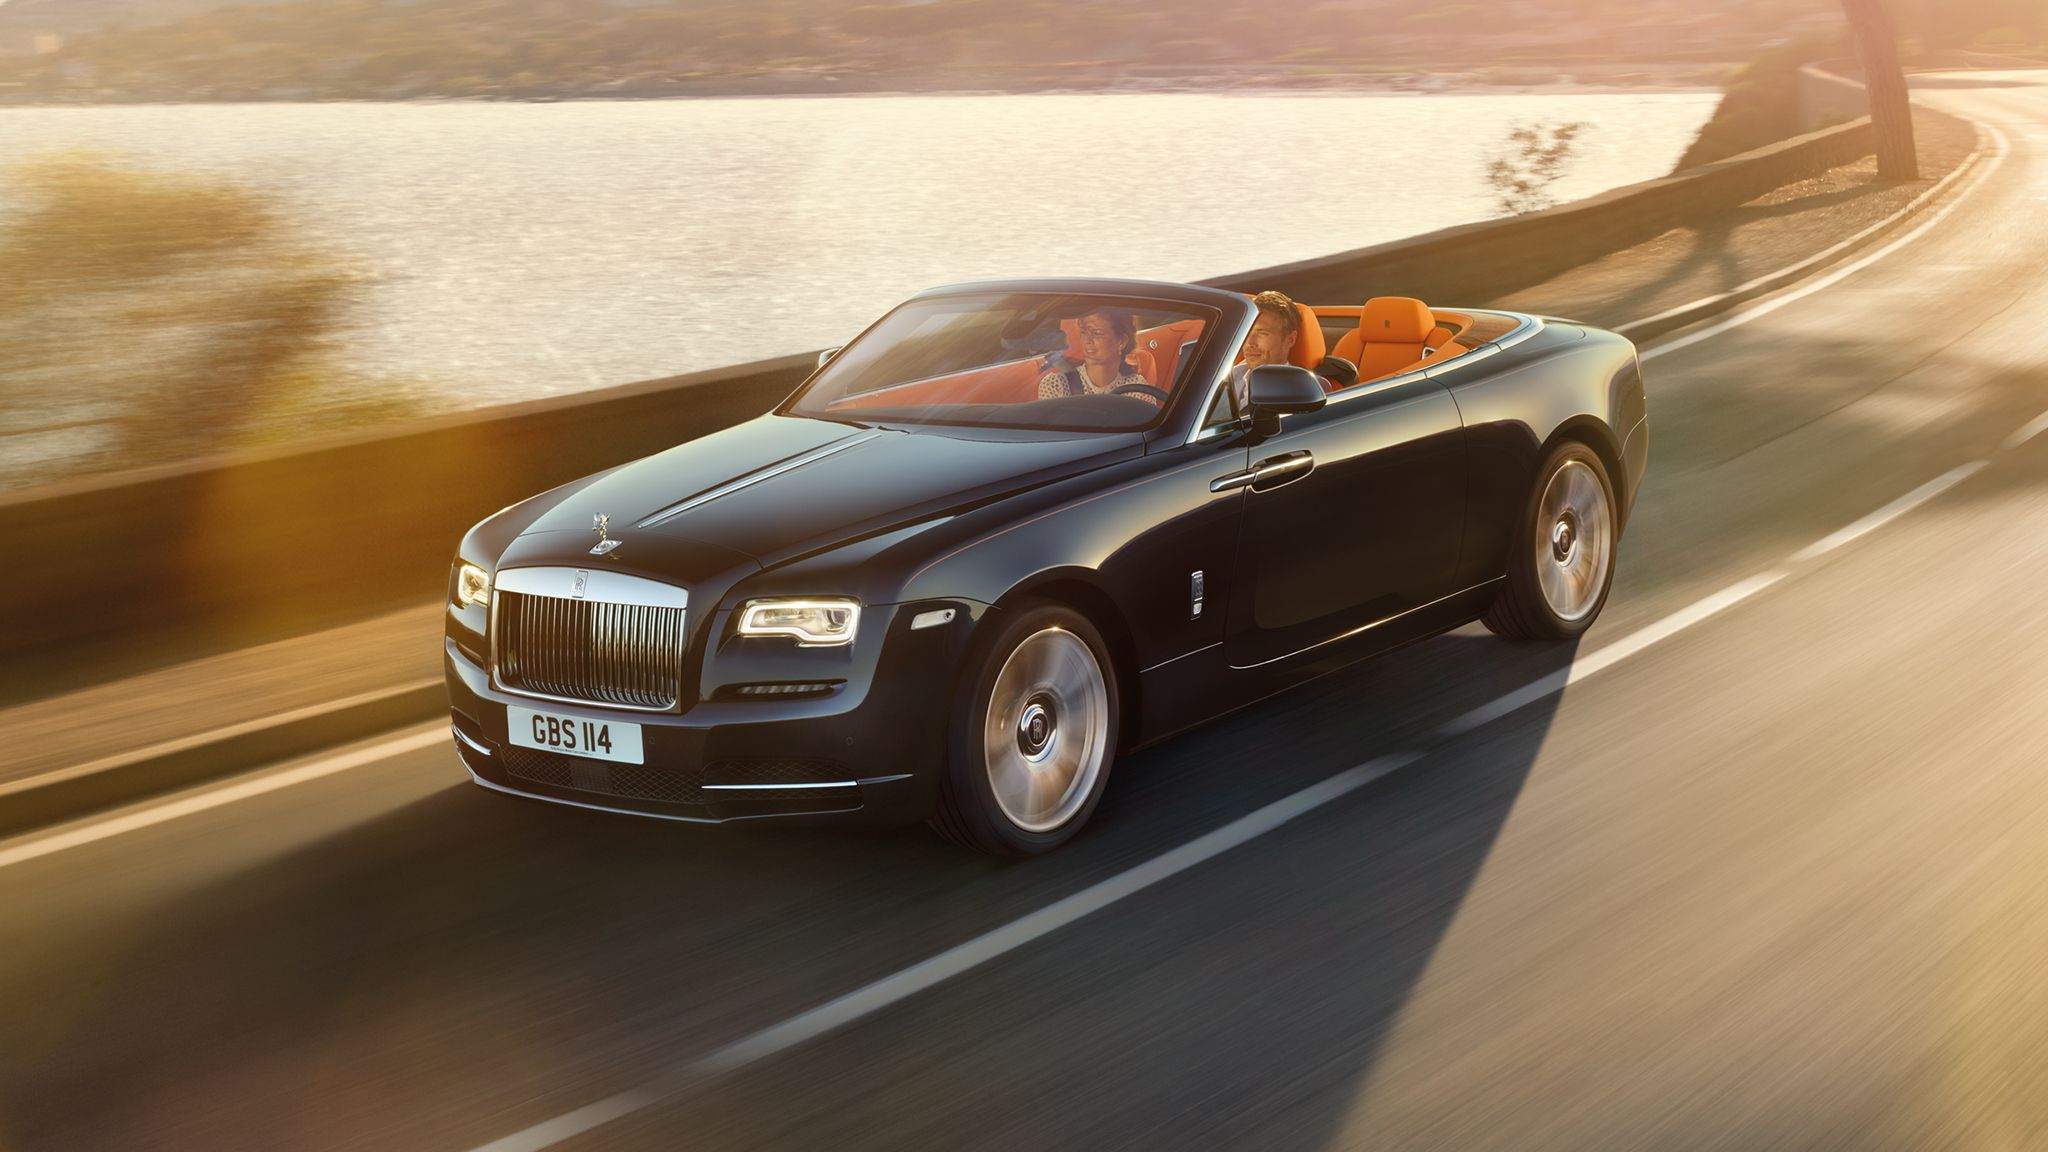 New rolls royce dawn convertible interior in orange and luxury accesories